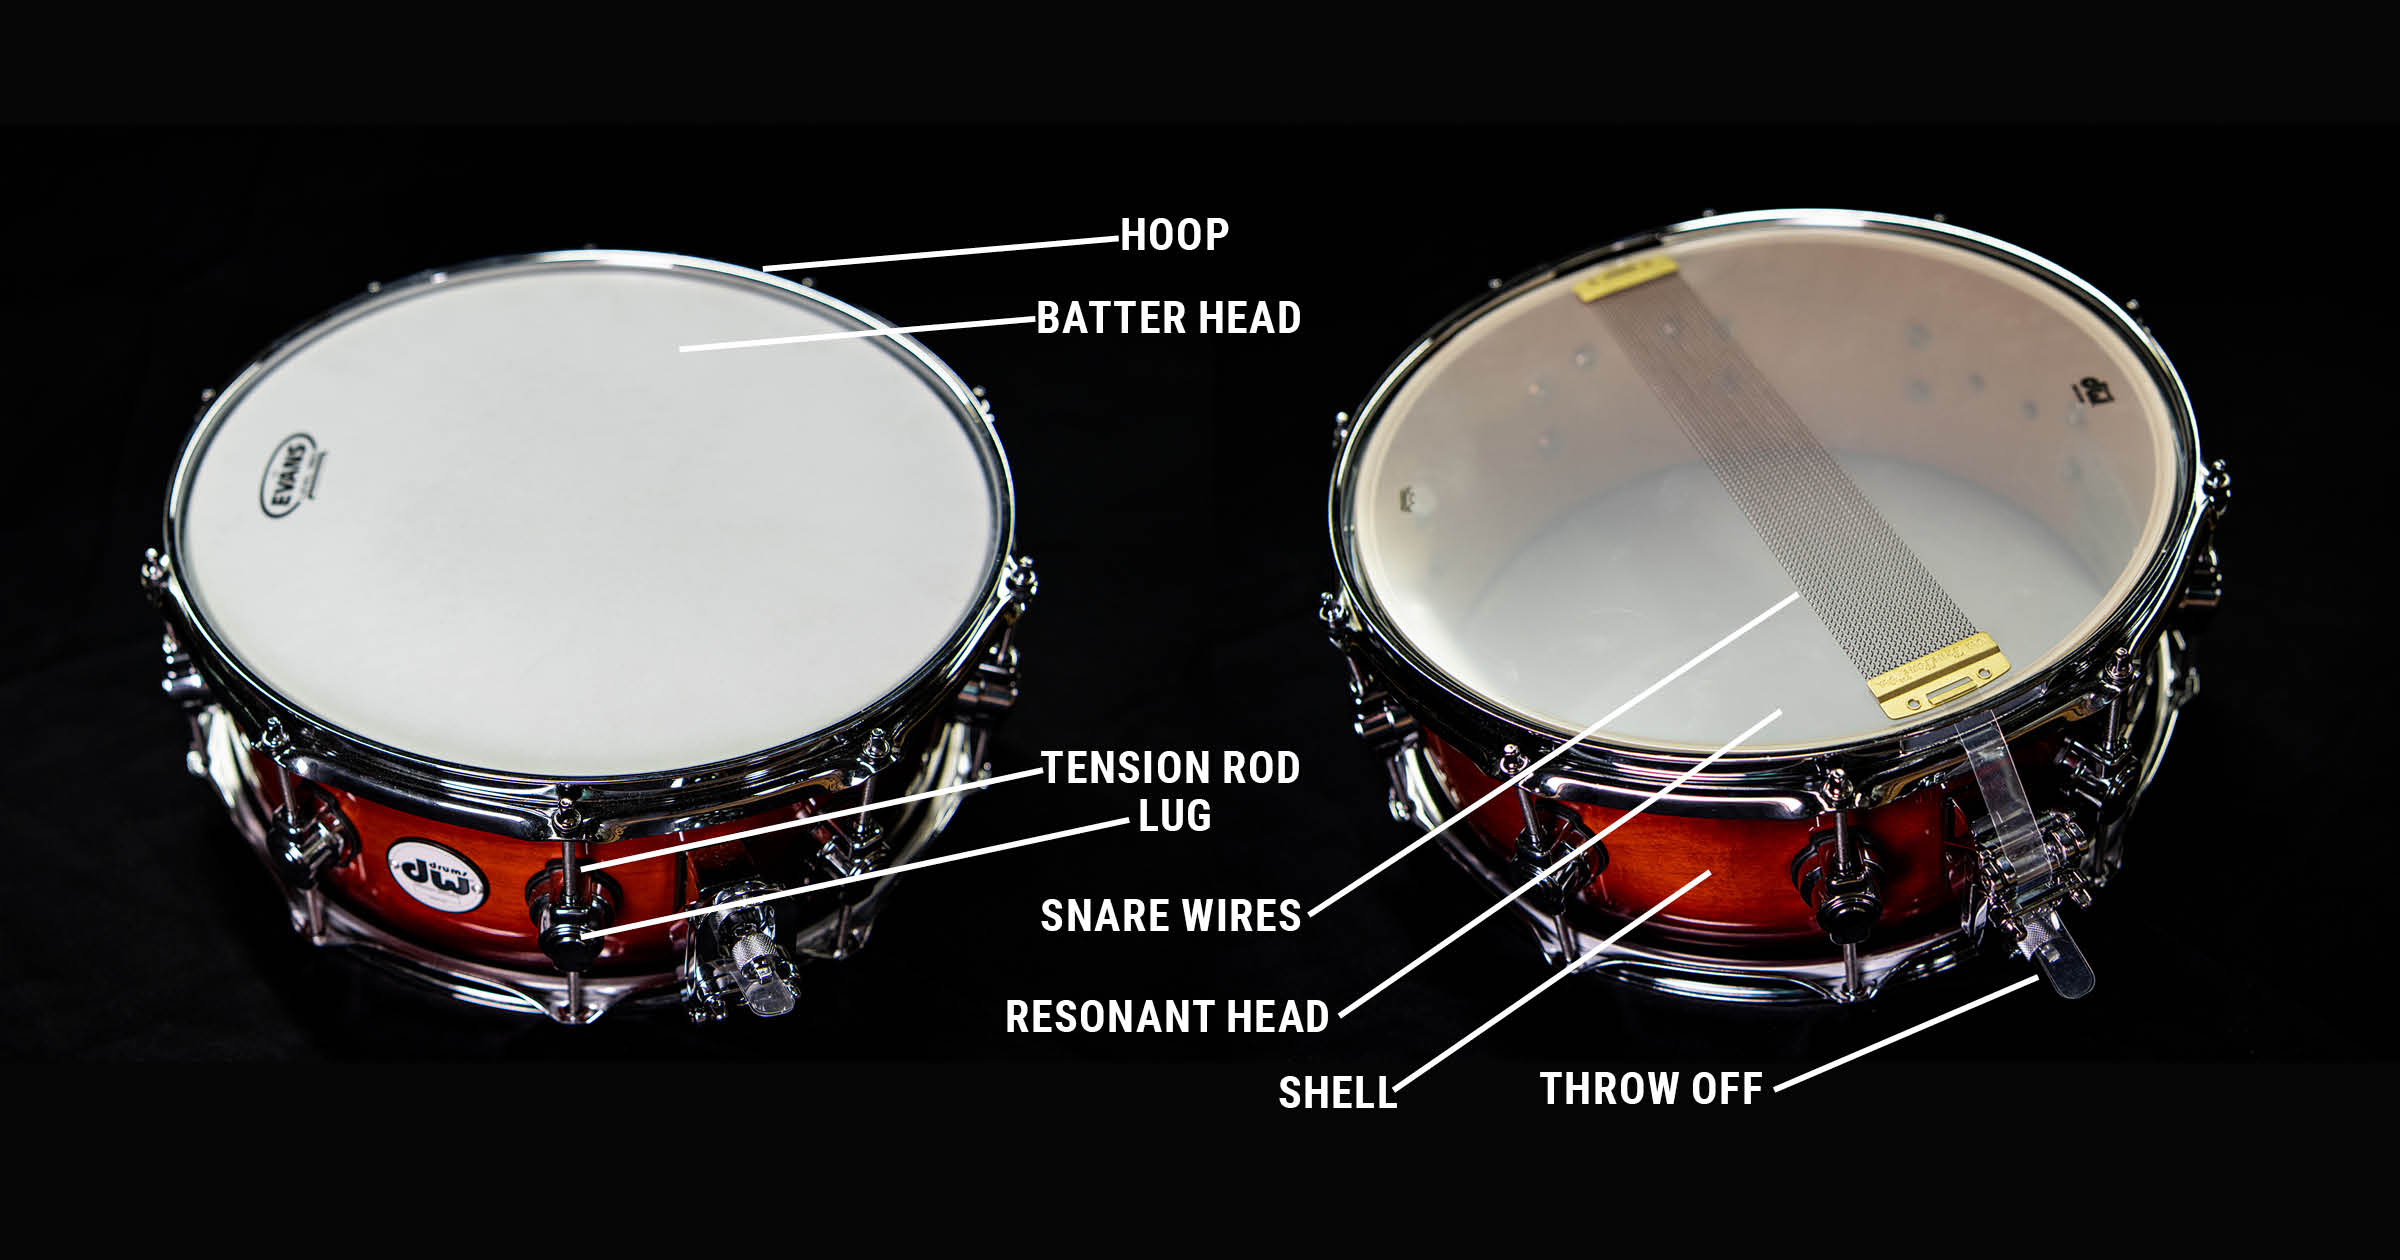 How To Play Drums: The Ultimate Resource For Beginner Drummers